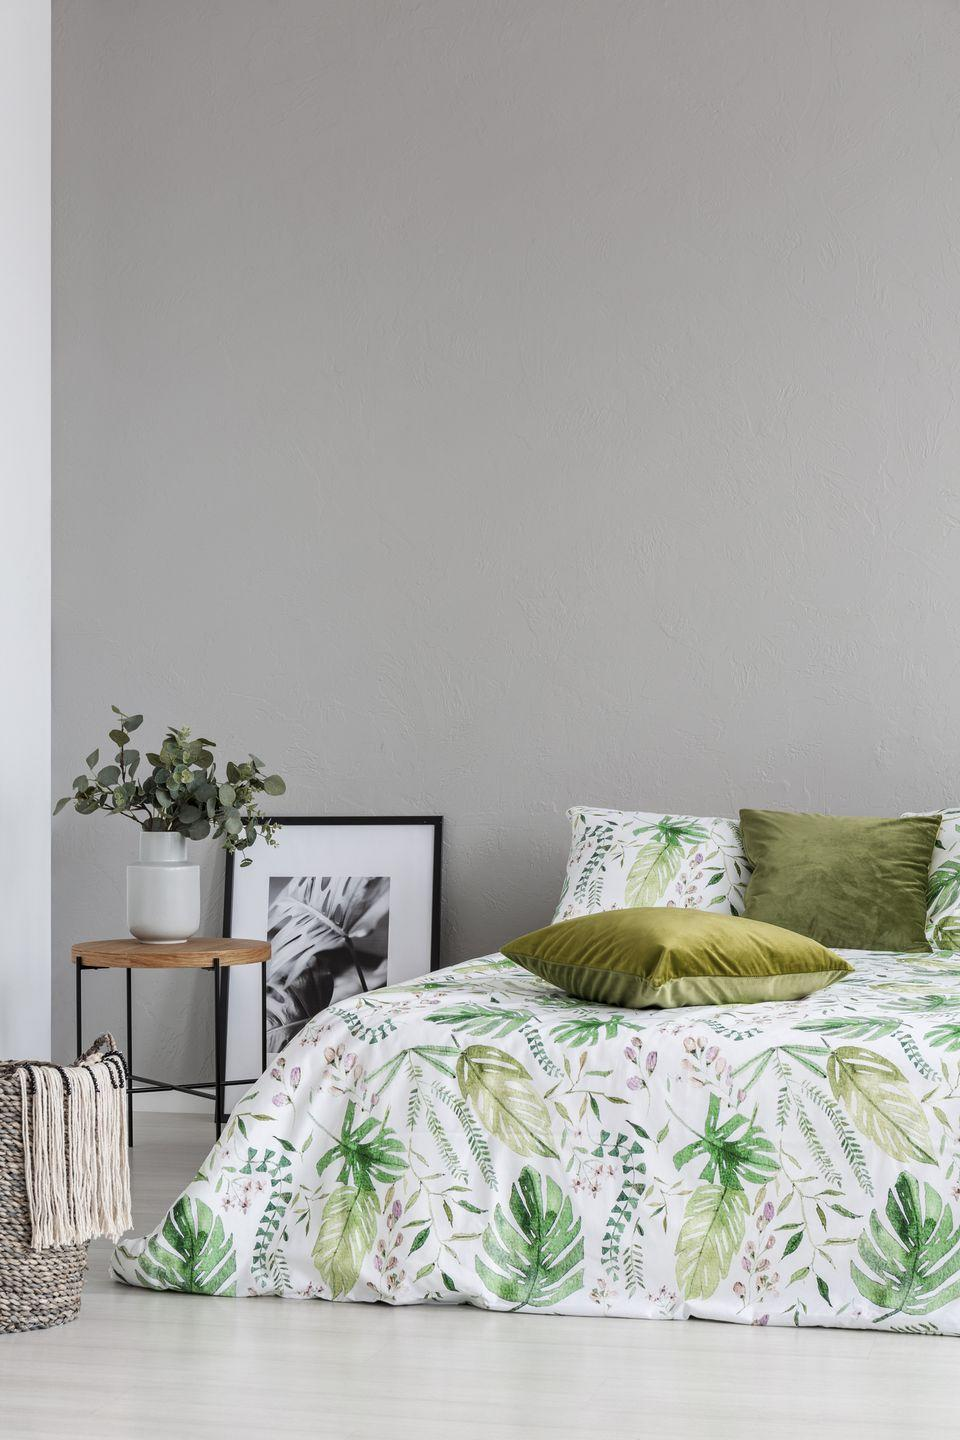 """<p>Interior designers predict that deep colors like navy blue and hunter green will be some of the <a href=""""https://www.goodhousekeeping.com/home/decorating-ideas/g34764482/paint-color-trends-2021/"""" rel=""""nofollow noopener"""" target=""""_blank"""" data-ylk=""""slk:top-trending colors of 2021"""" class=""""link rapid-noclick-resp"""">top-trending colors of 2021</a>. But just because they're darker shades doesn't mean they can't be brightened up for spring. """"I love how olive green is being used in paint, pillows, and upholstery,"""" says Mayer. """"It's a great example of a color that transitions well from spring and summer to cooler months."""" Pair the hue with lots of indoor plants for a serious celebration of spring. </p>"""